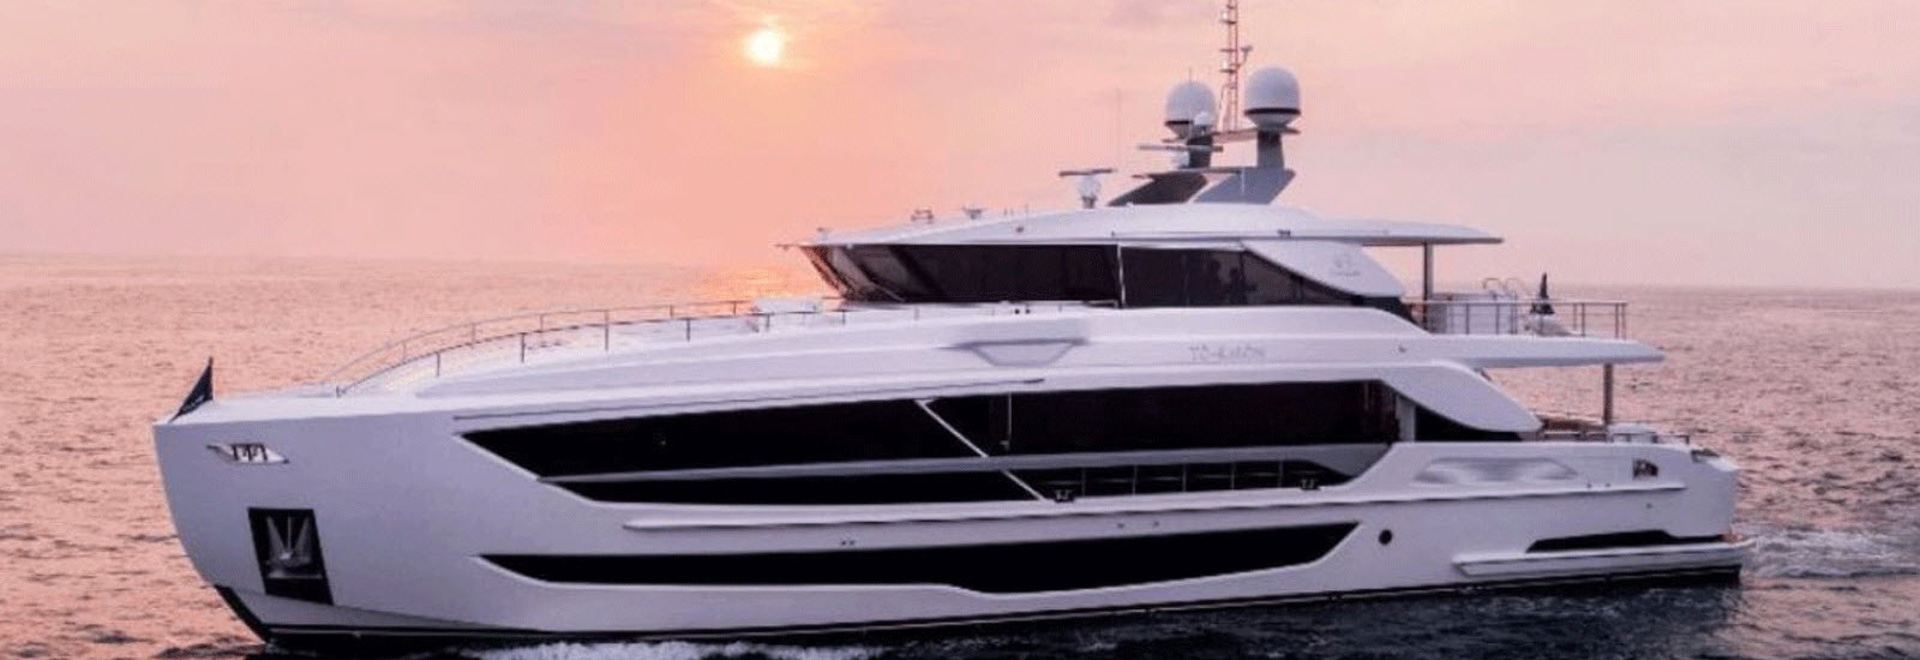 Second Horizon FD102 Superyacht To-Kalon Launched